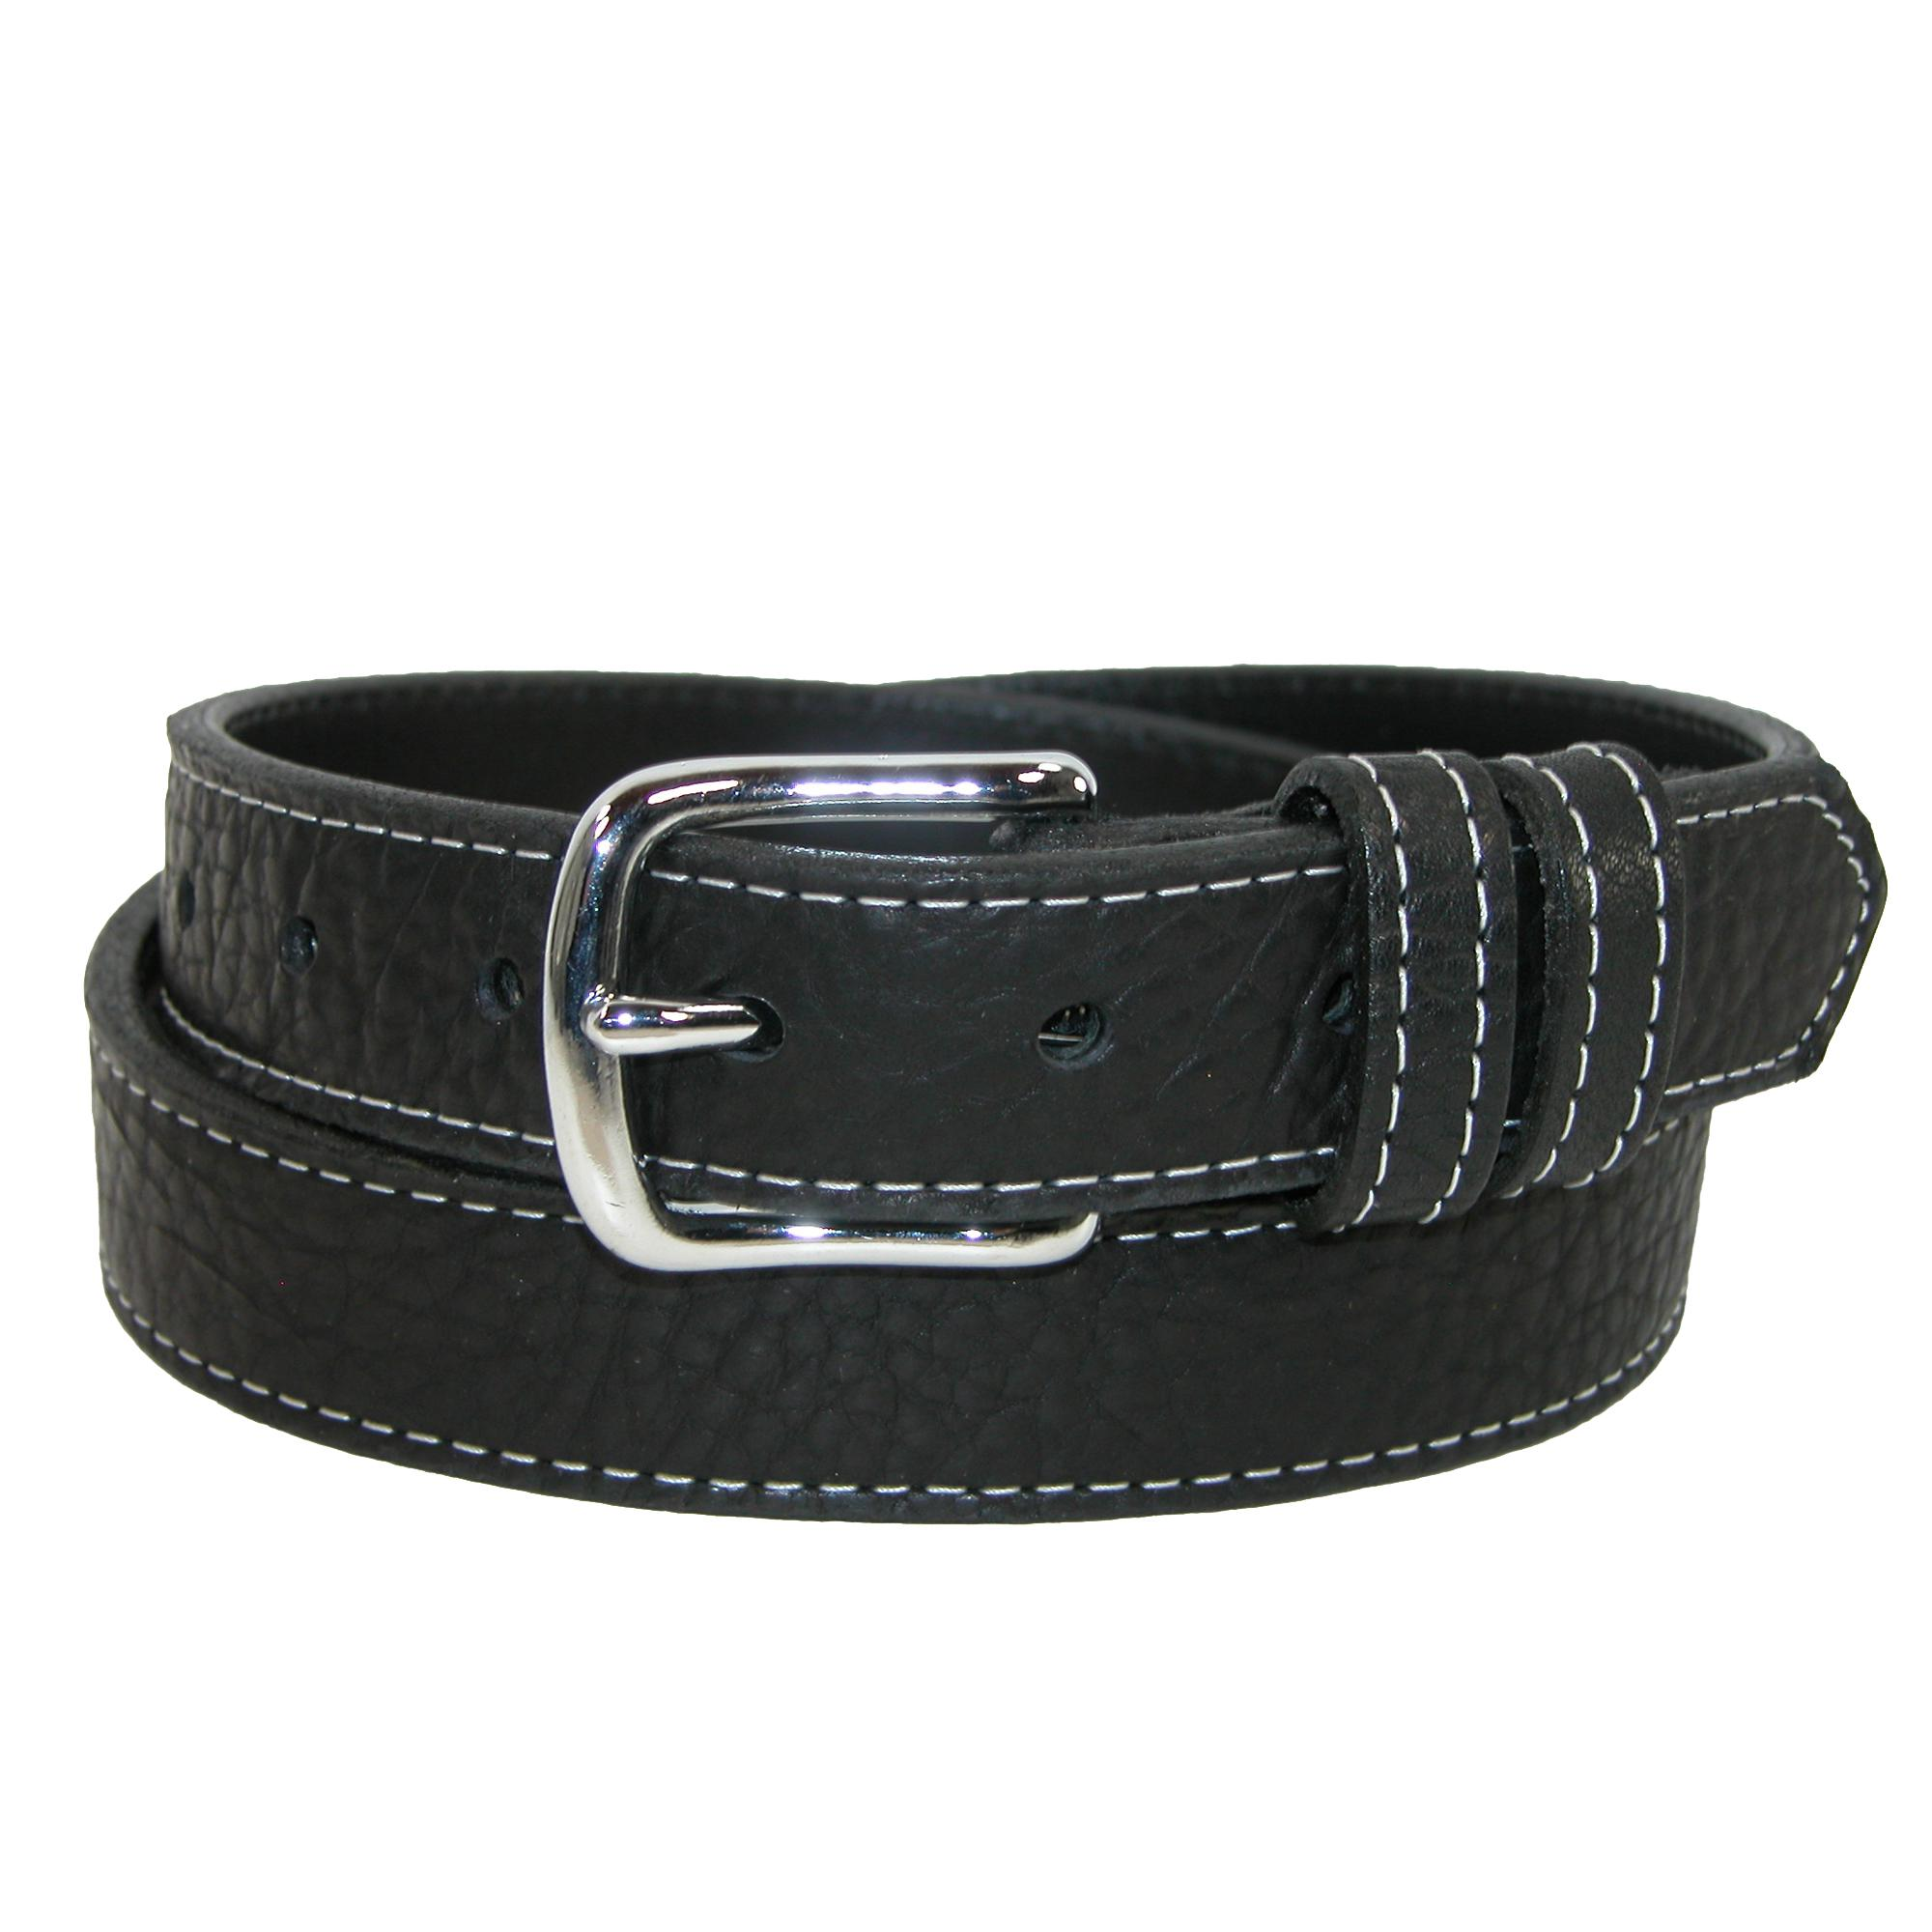 Boston Leather Men's Big & Tall Grizzley Bison Leather With Contrast Stitch Belt